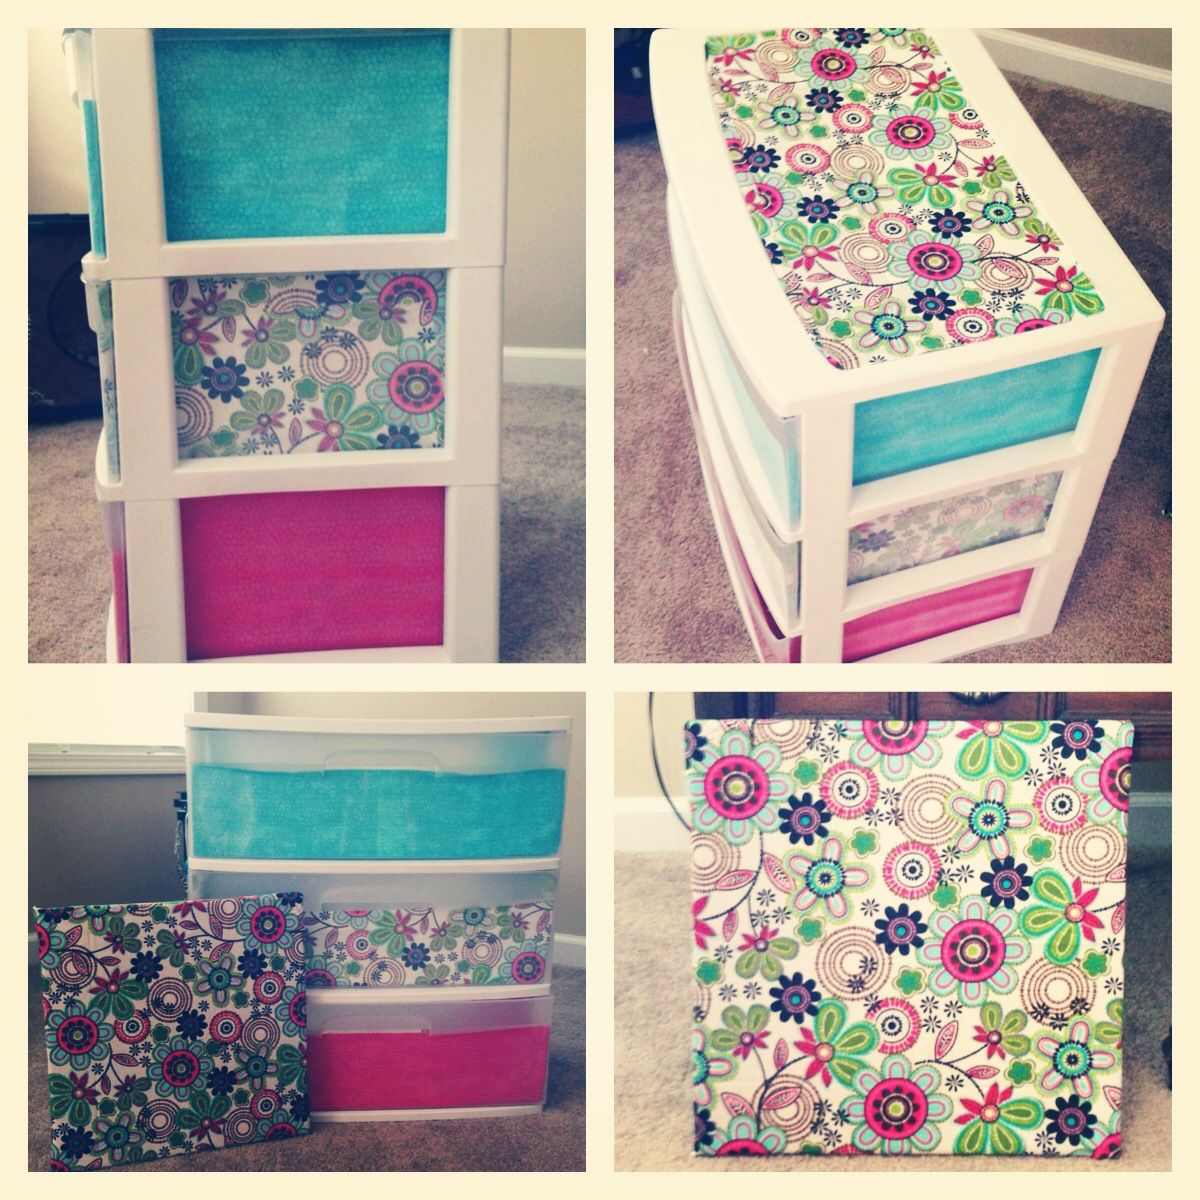 New To Spice Up The Bedroom Accredited Online College Degree Storage Bins Fabrics And Paper